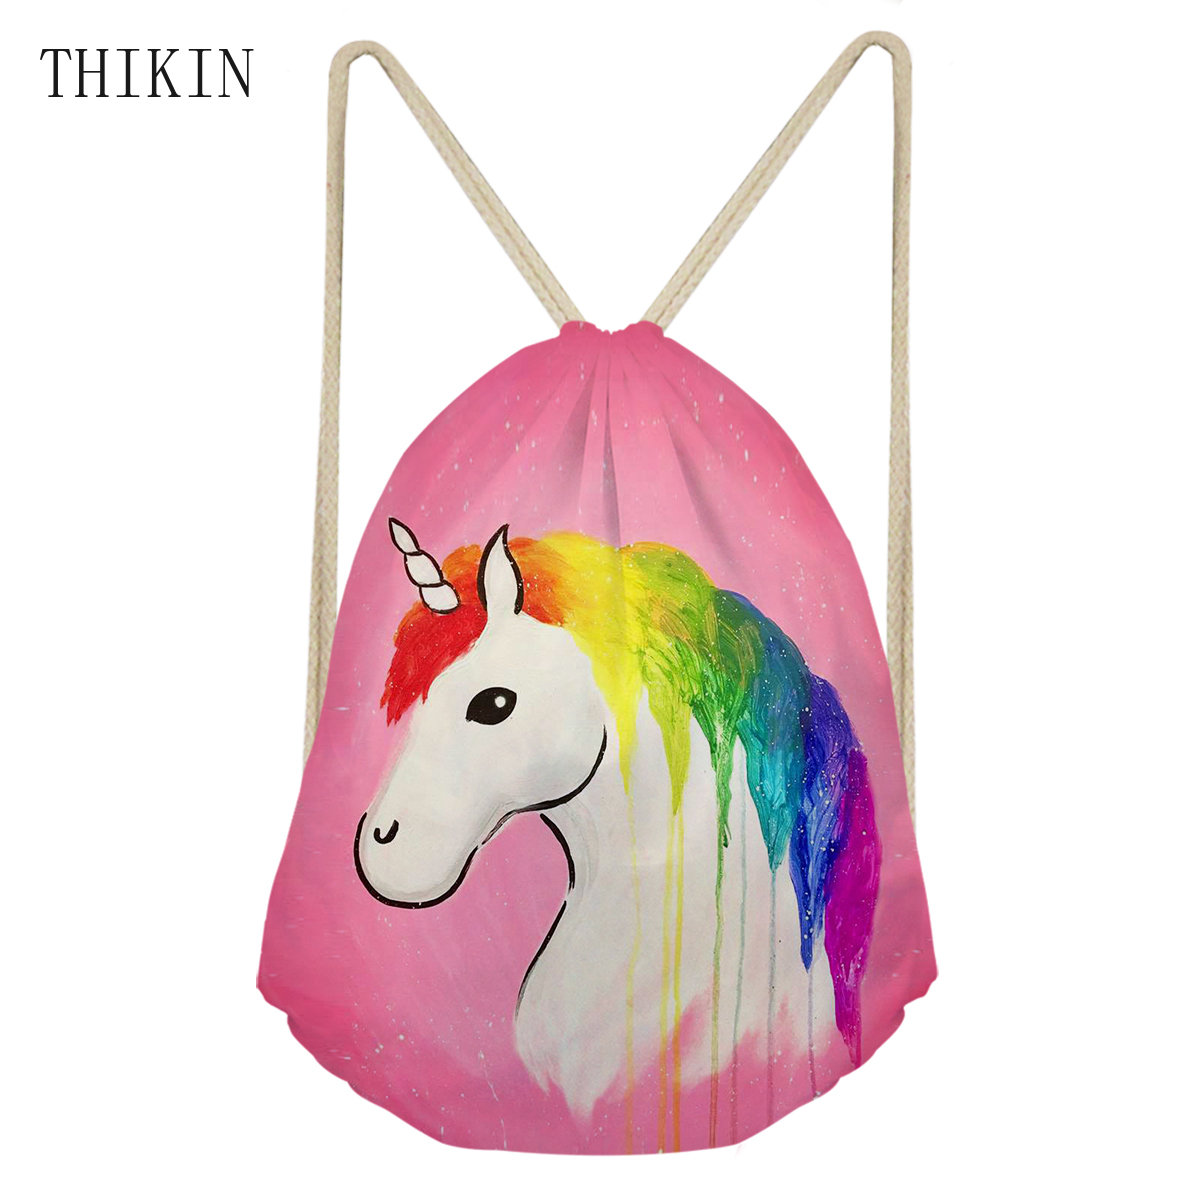 THIKIN Brand Women Rainbow Horse Unicorn Printing Sports Bag Waterproof Draw-string Swimming Bags Cartooon Backpack Bolsa Praia